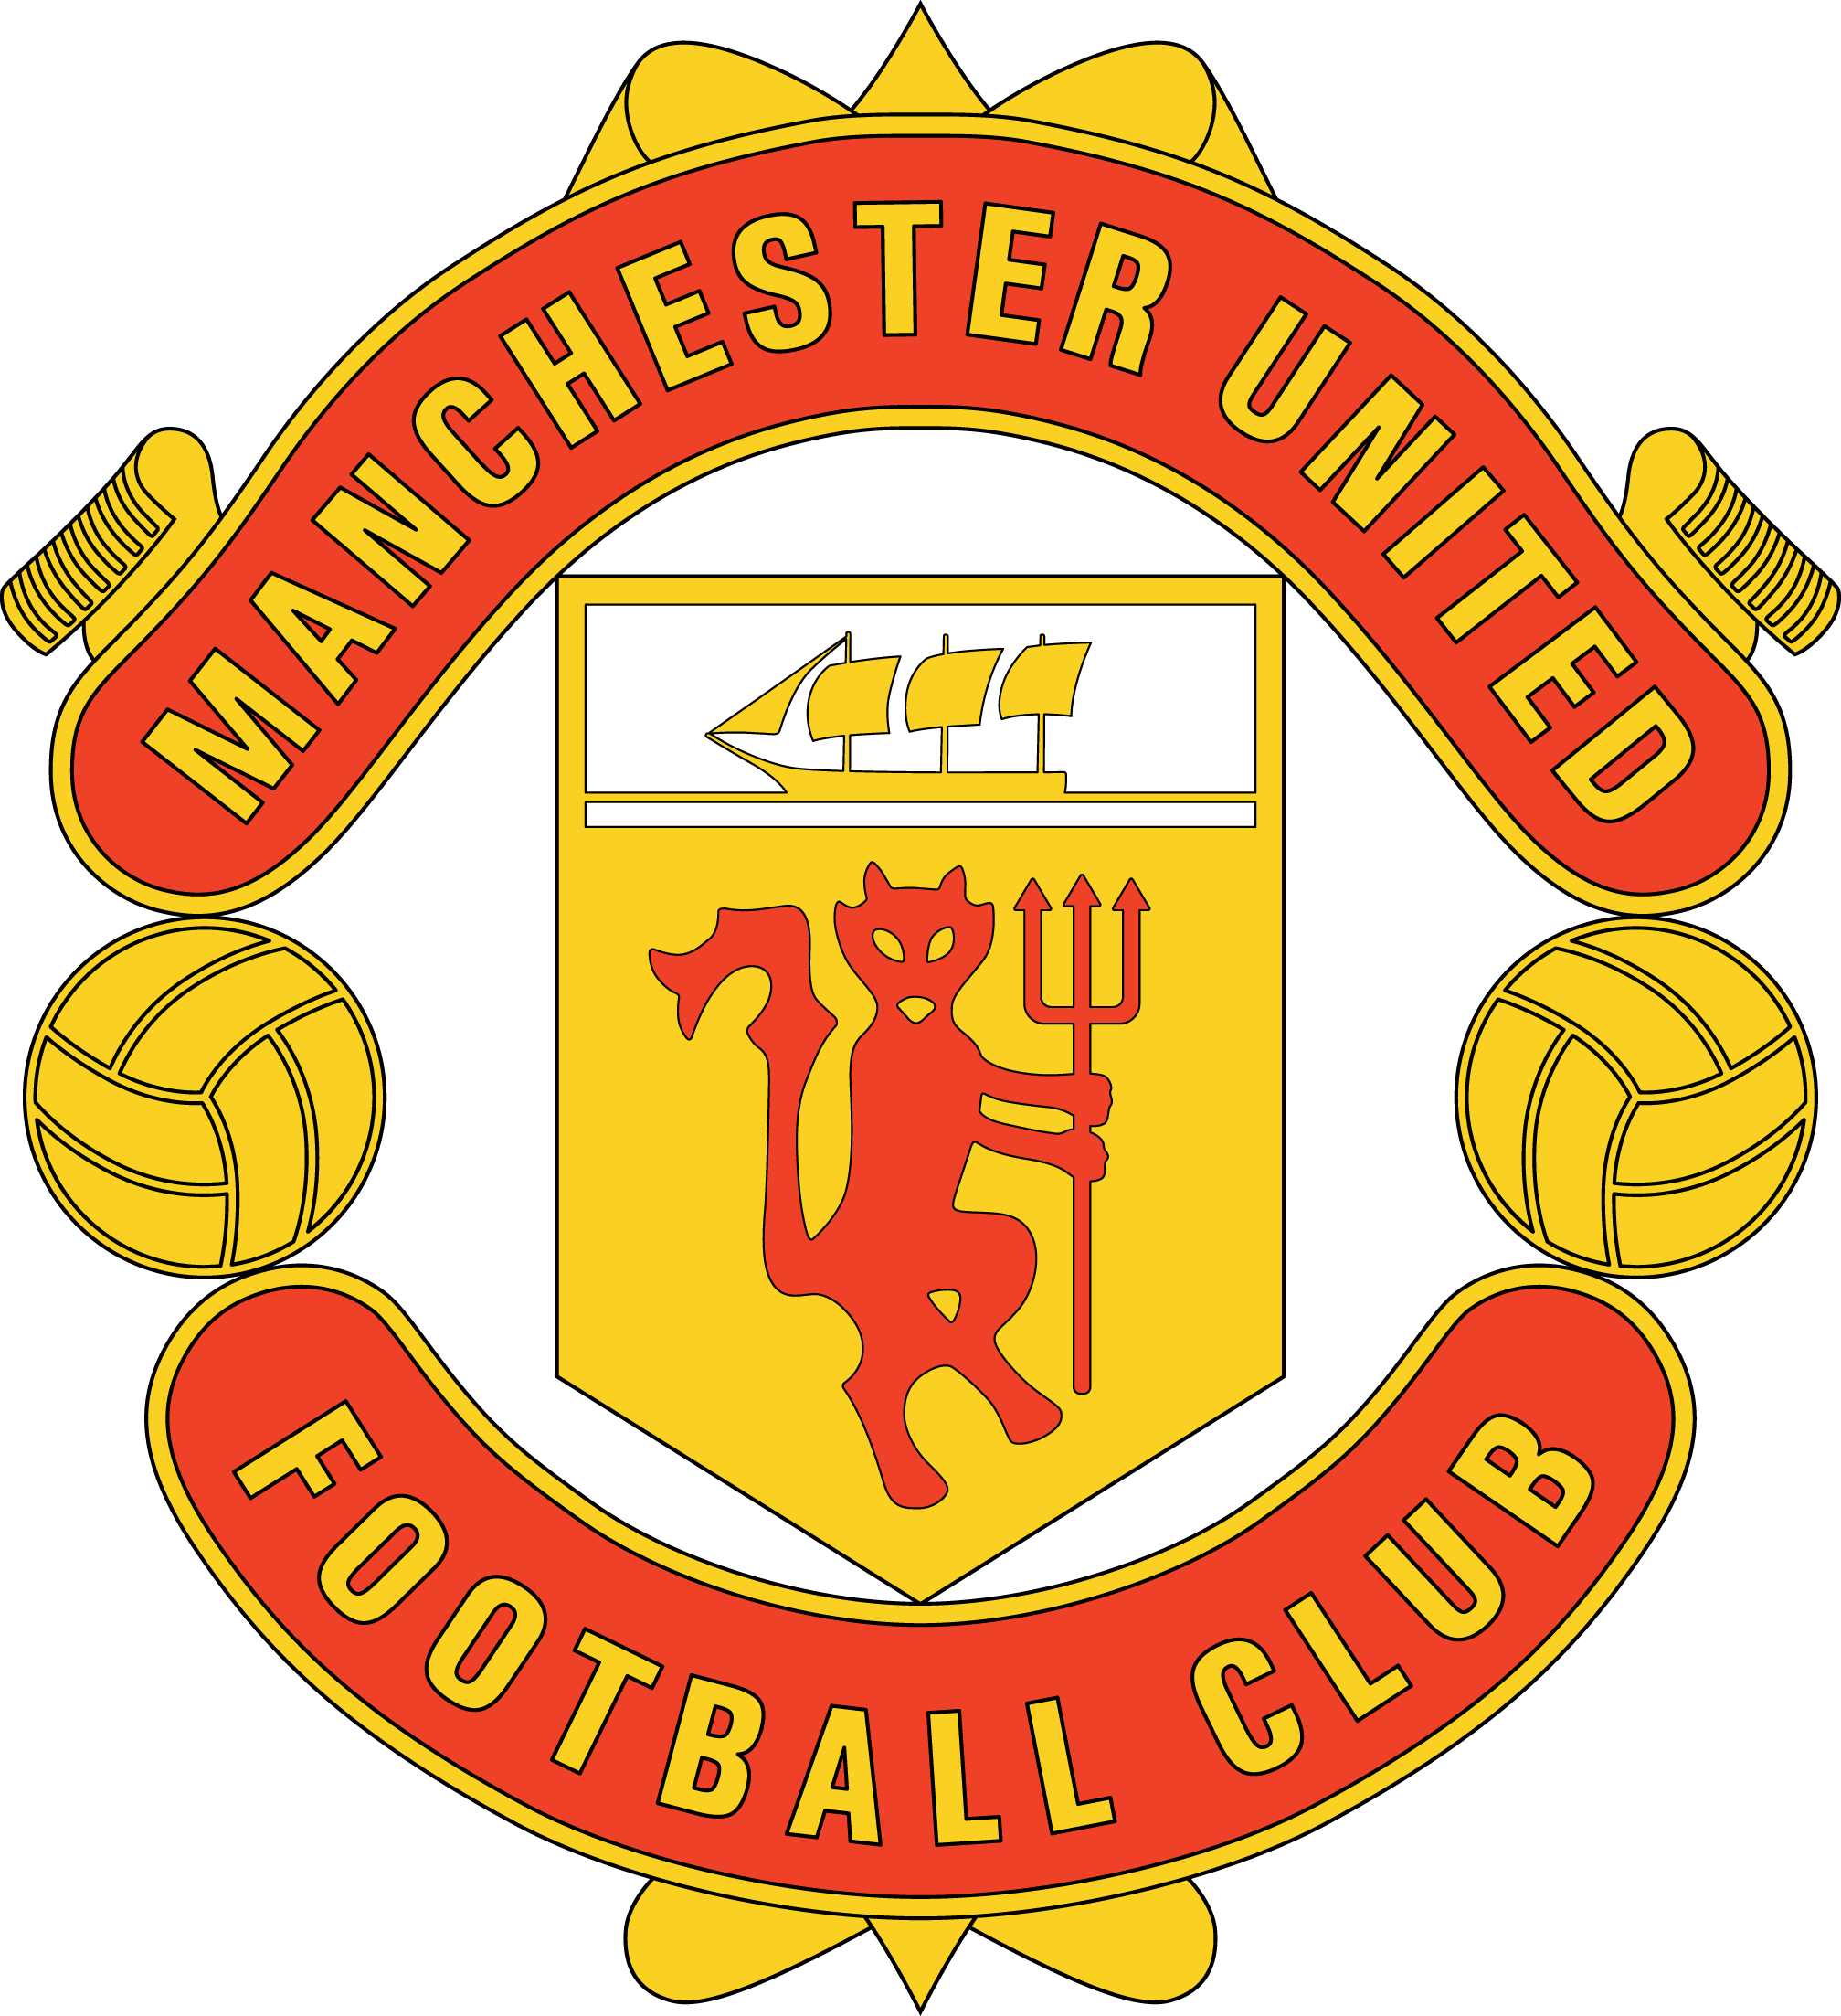 Manchester United herb 1973-1998